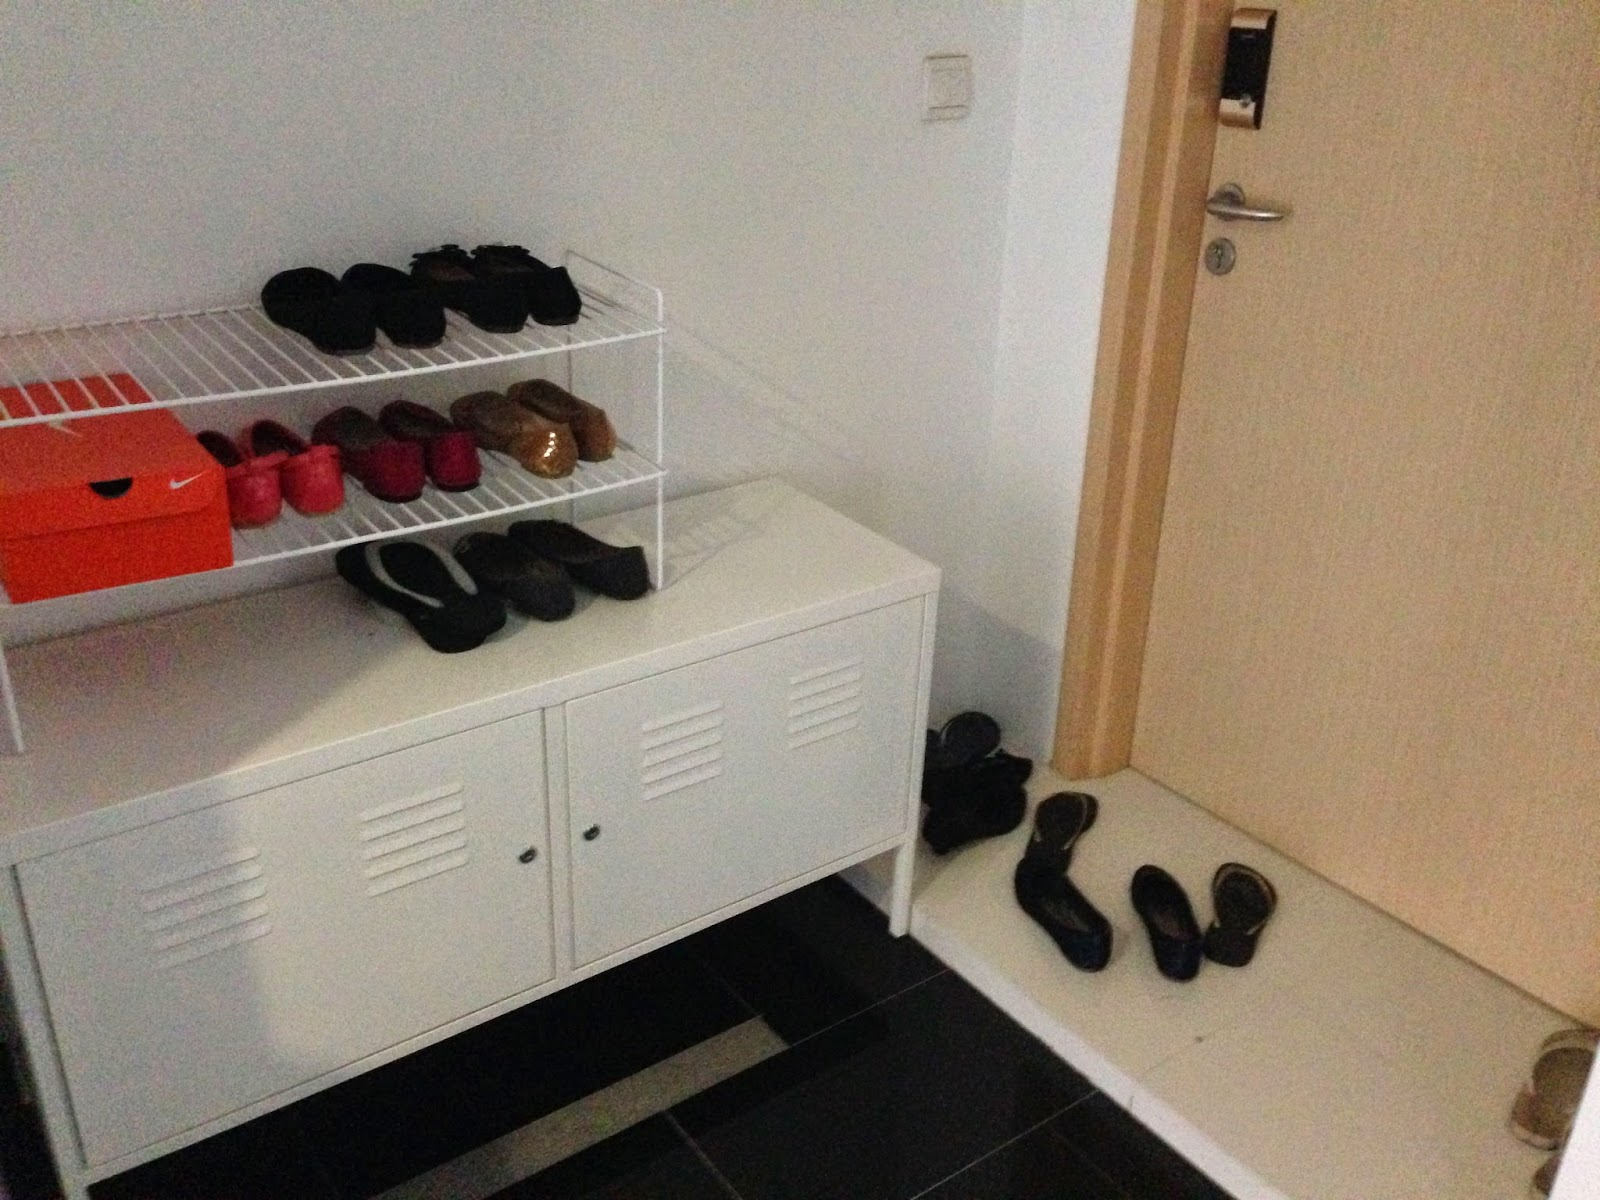 les chaussures l 39 entr e un zeste de singapour. Black Bedroom Furniture Sets. Home Design Ideas